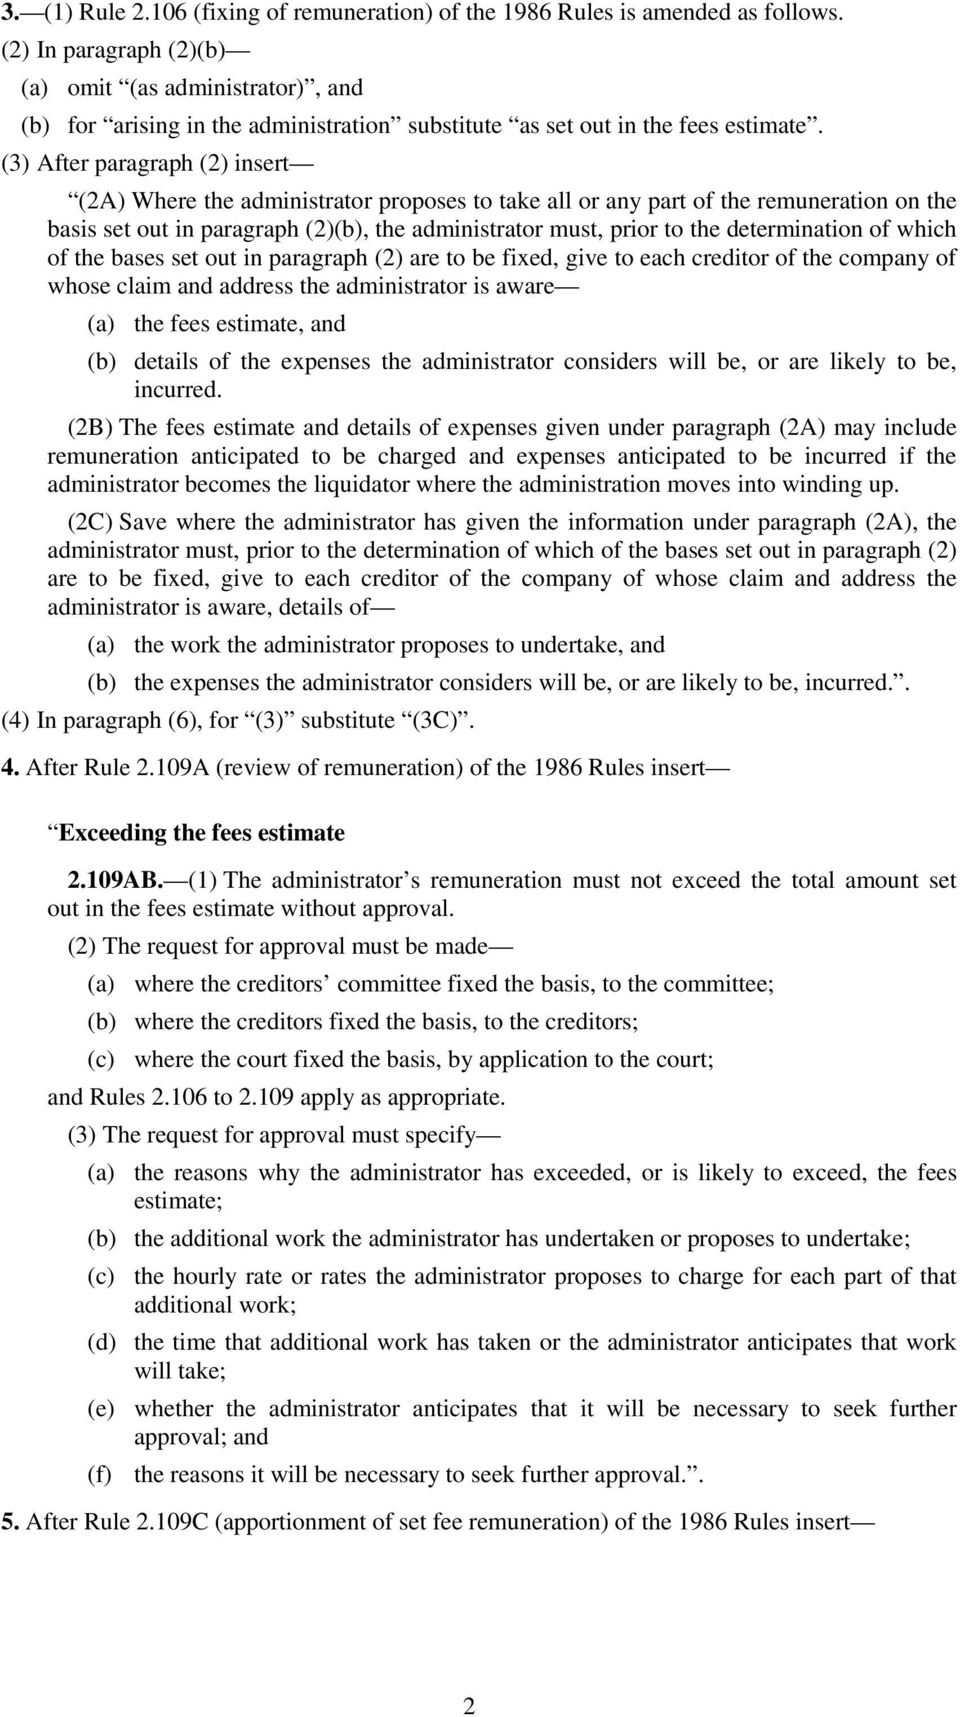 (3) After paragraph (2) insert (2A) Where the administrator proposes to take all or any part of the remuneration on the basis set out in paragraph (2)(b), the administrator must, prior to the